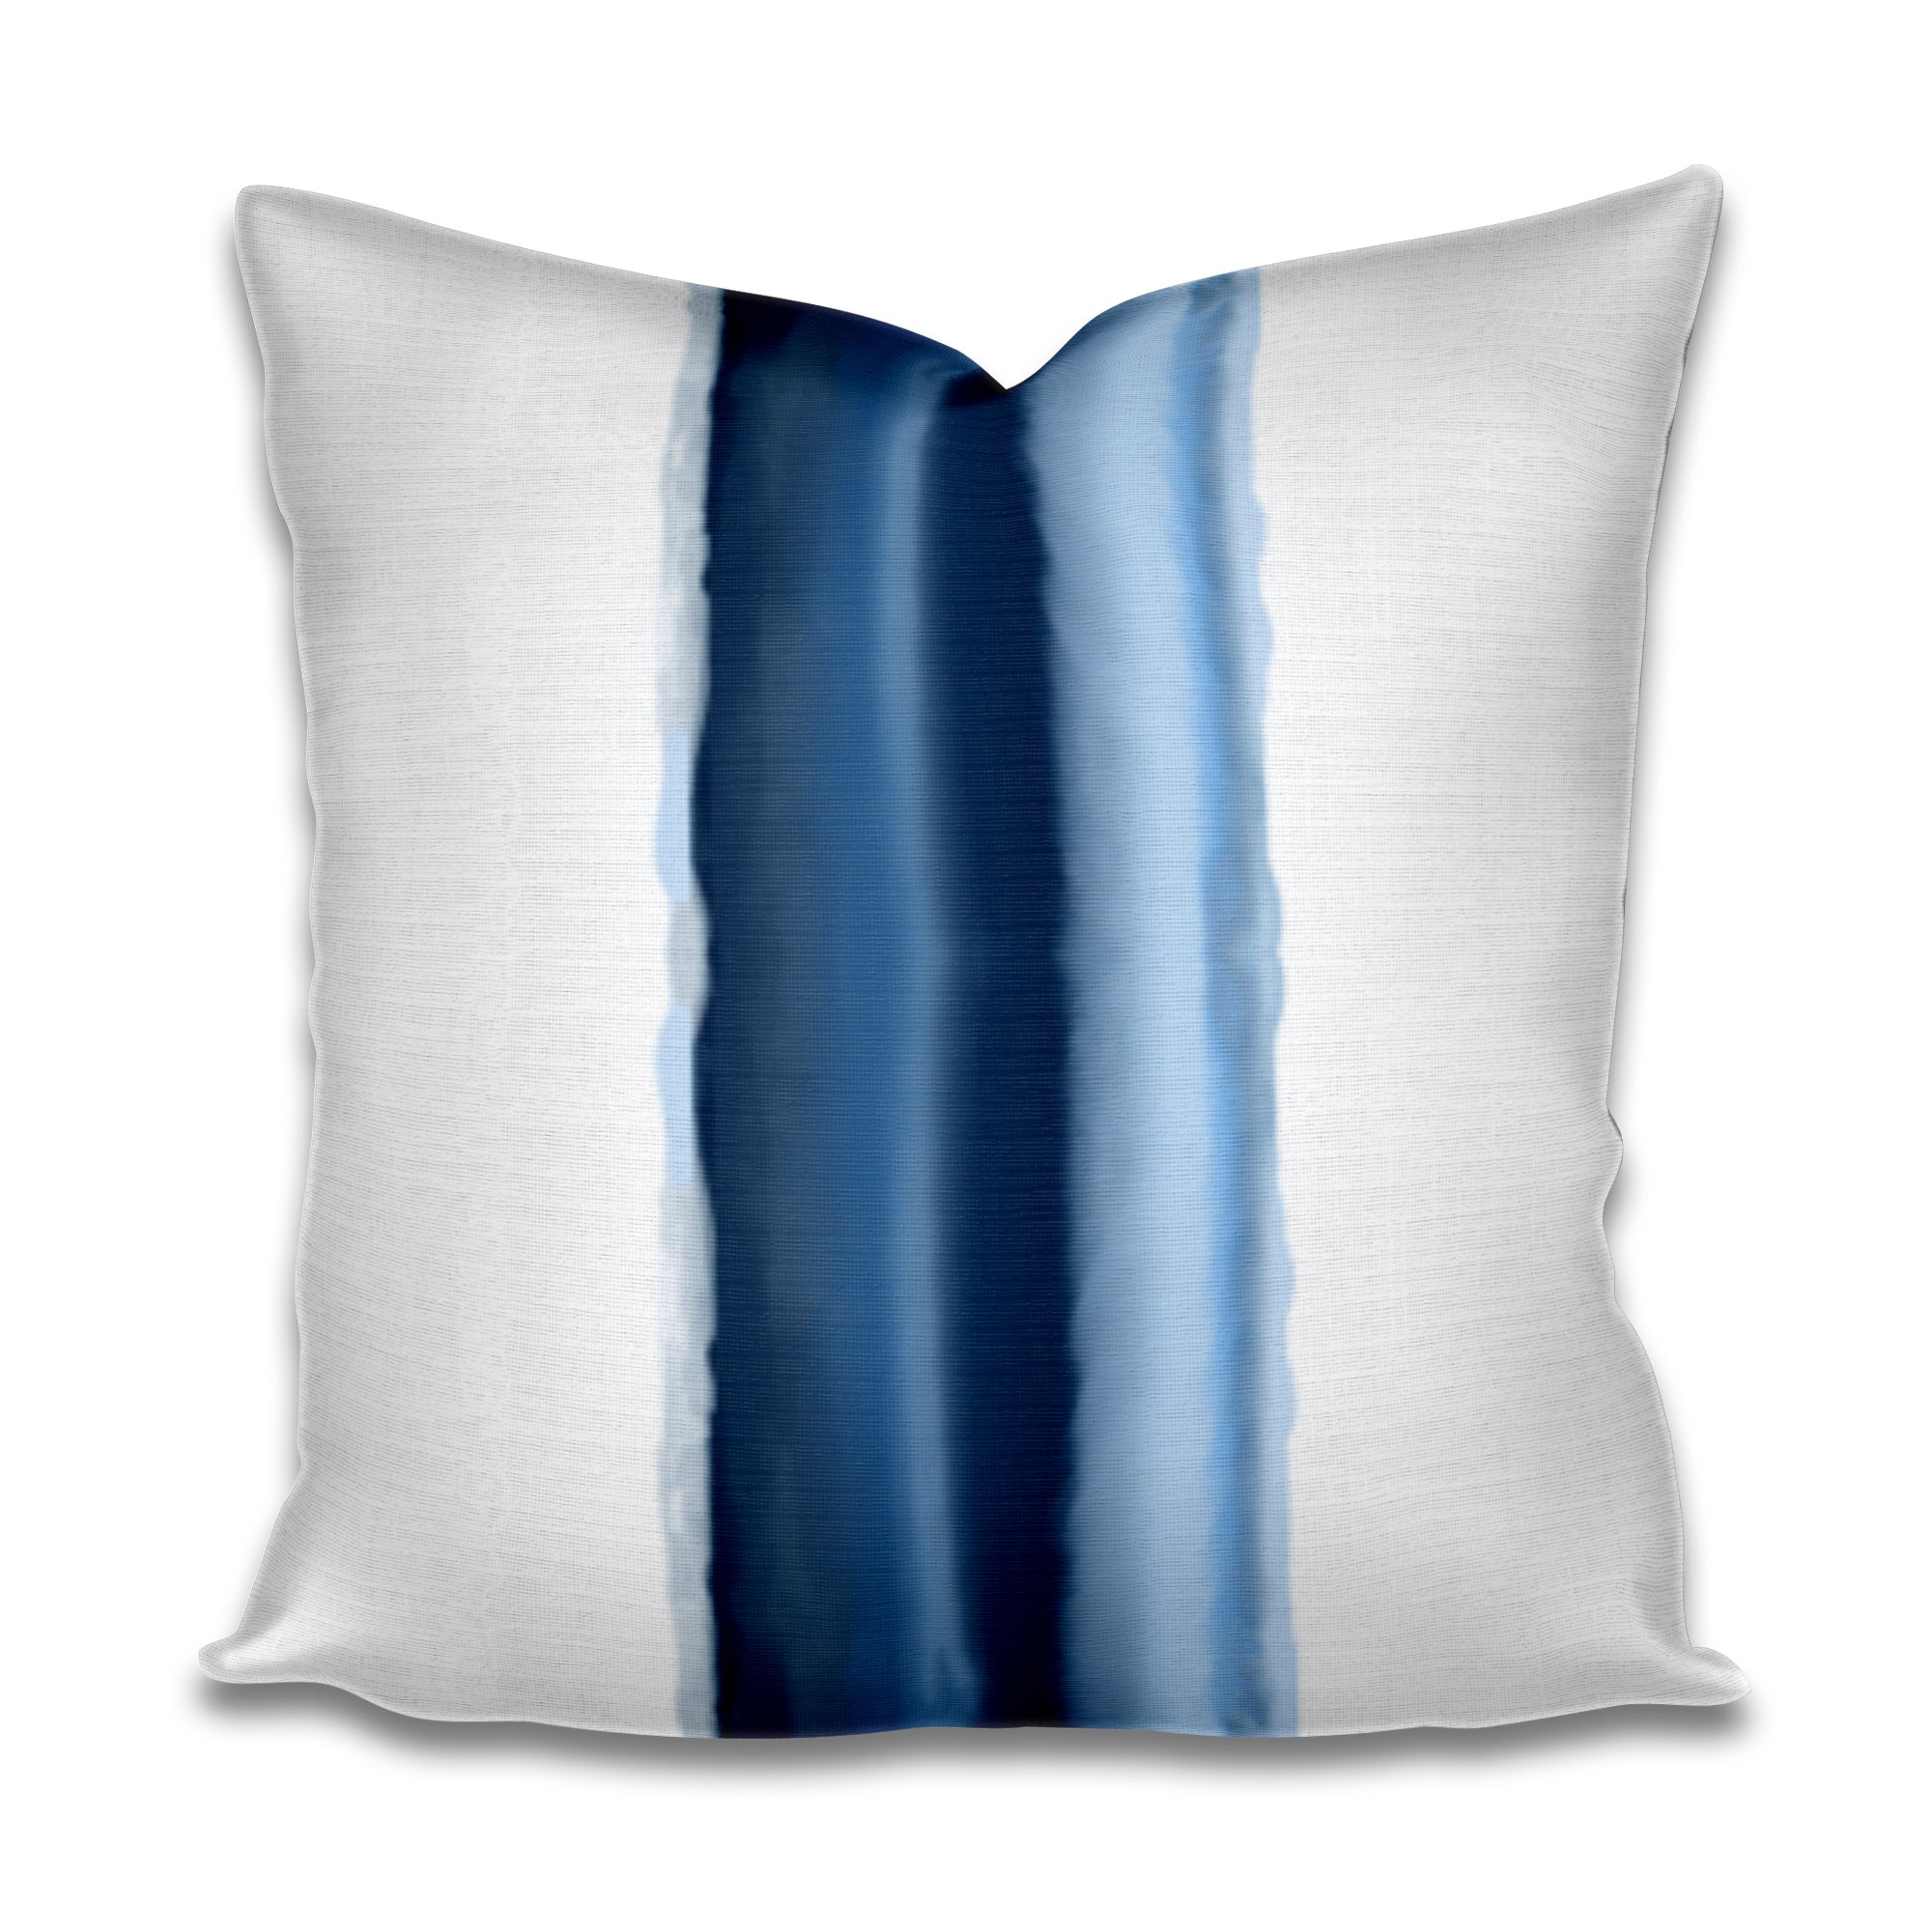 blue middle stripe pillow, middle stripe lumbar pillow, colorblock pillow, color block pillow, blue shibori pillow, shibori stripe pillow, navy beach house pillow